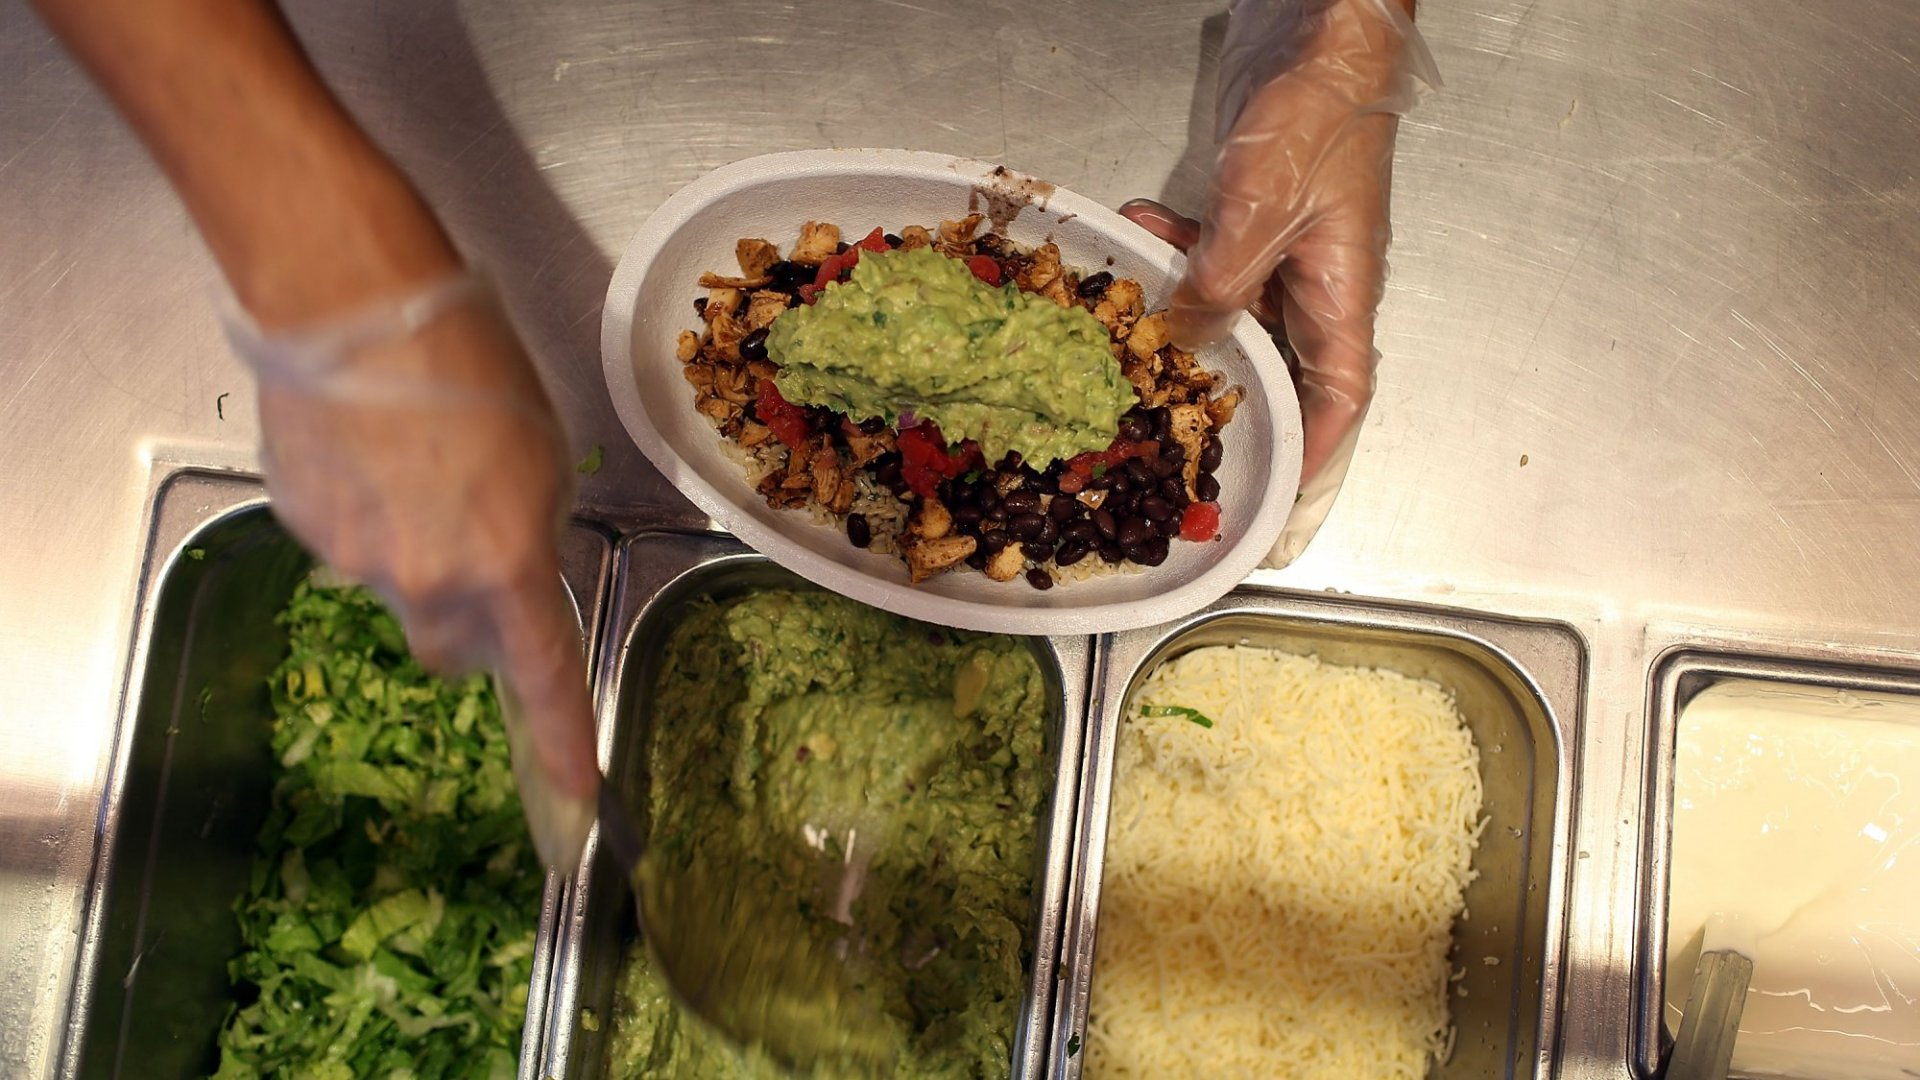 Chipotle Fined for More than 13,000 Alleged Labor Violations